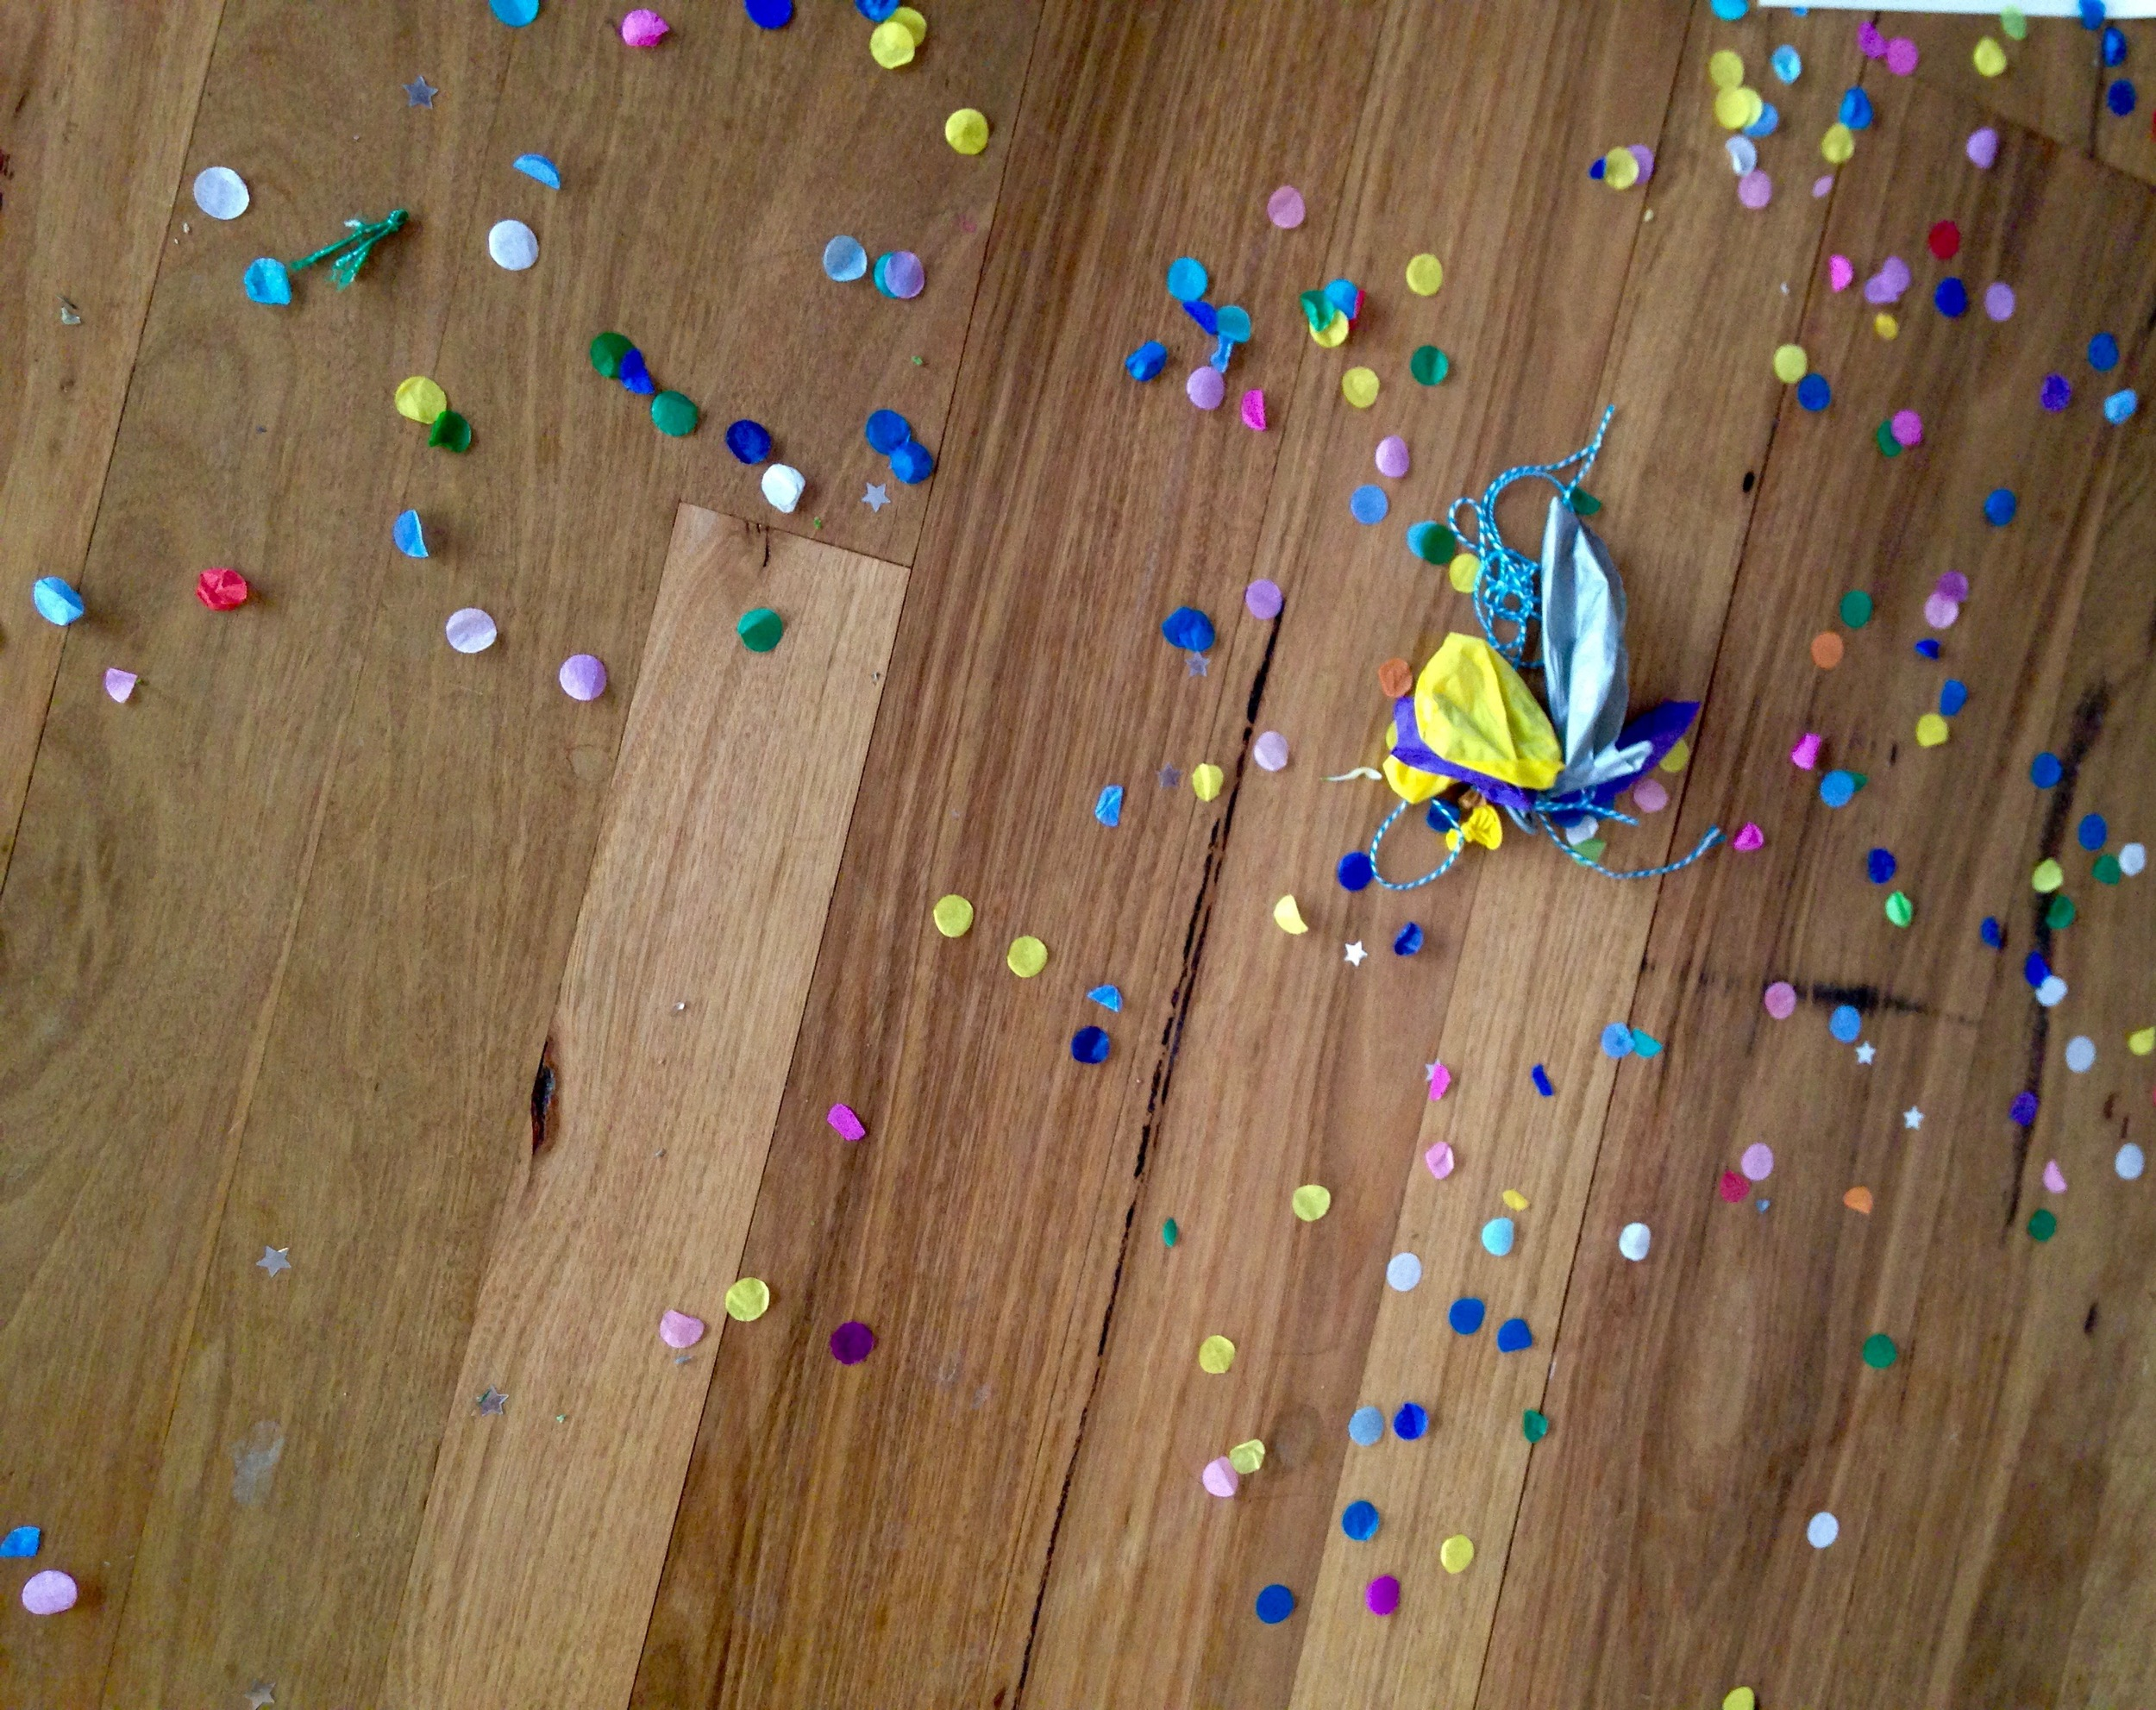 Confetti Filled Balloons - the aftermath